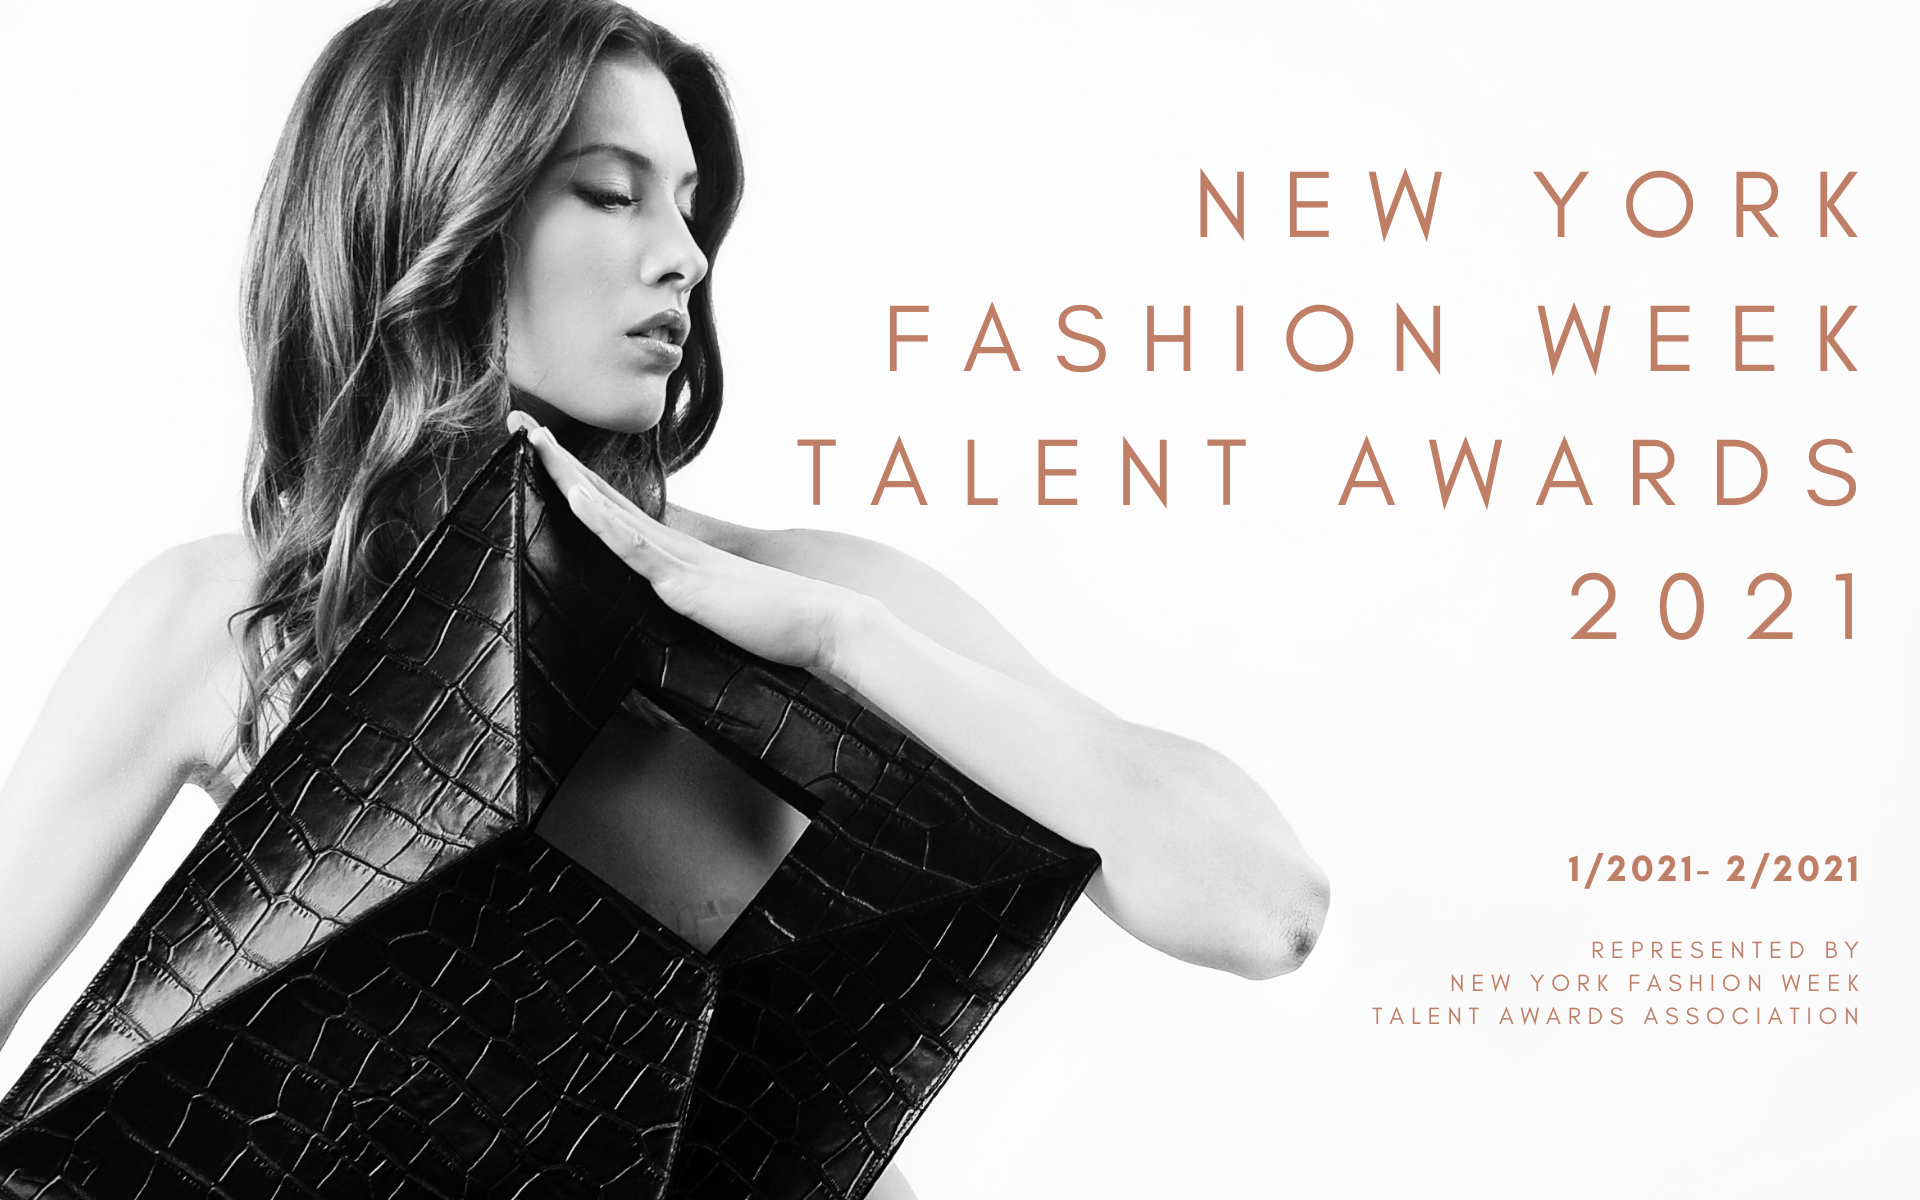 UpLive Seeks Influencers for Live-Stream New York Fashion Week Talent Awards Competition